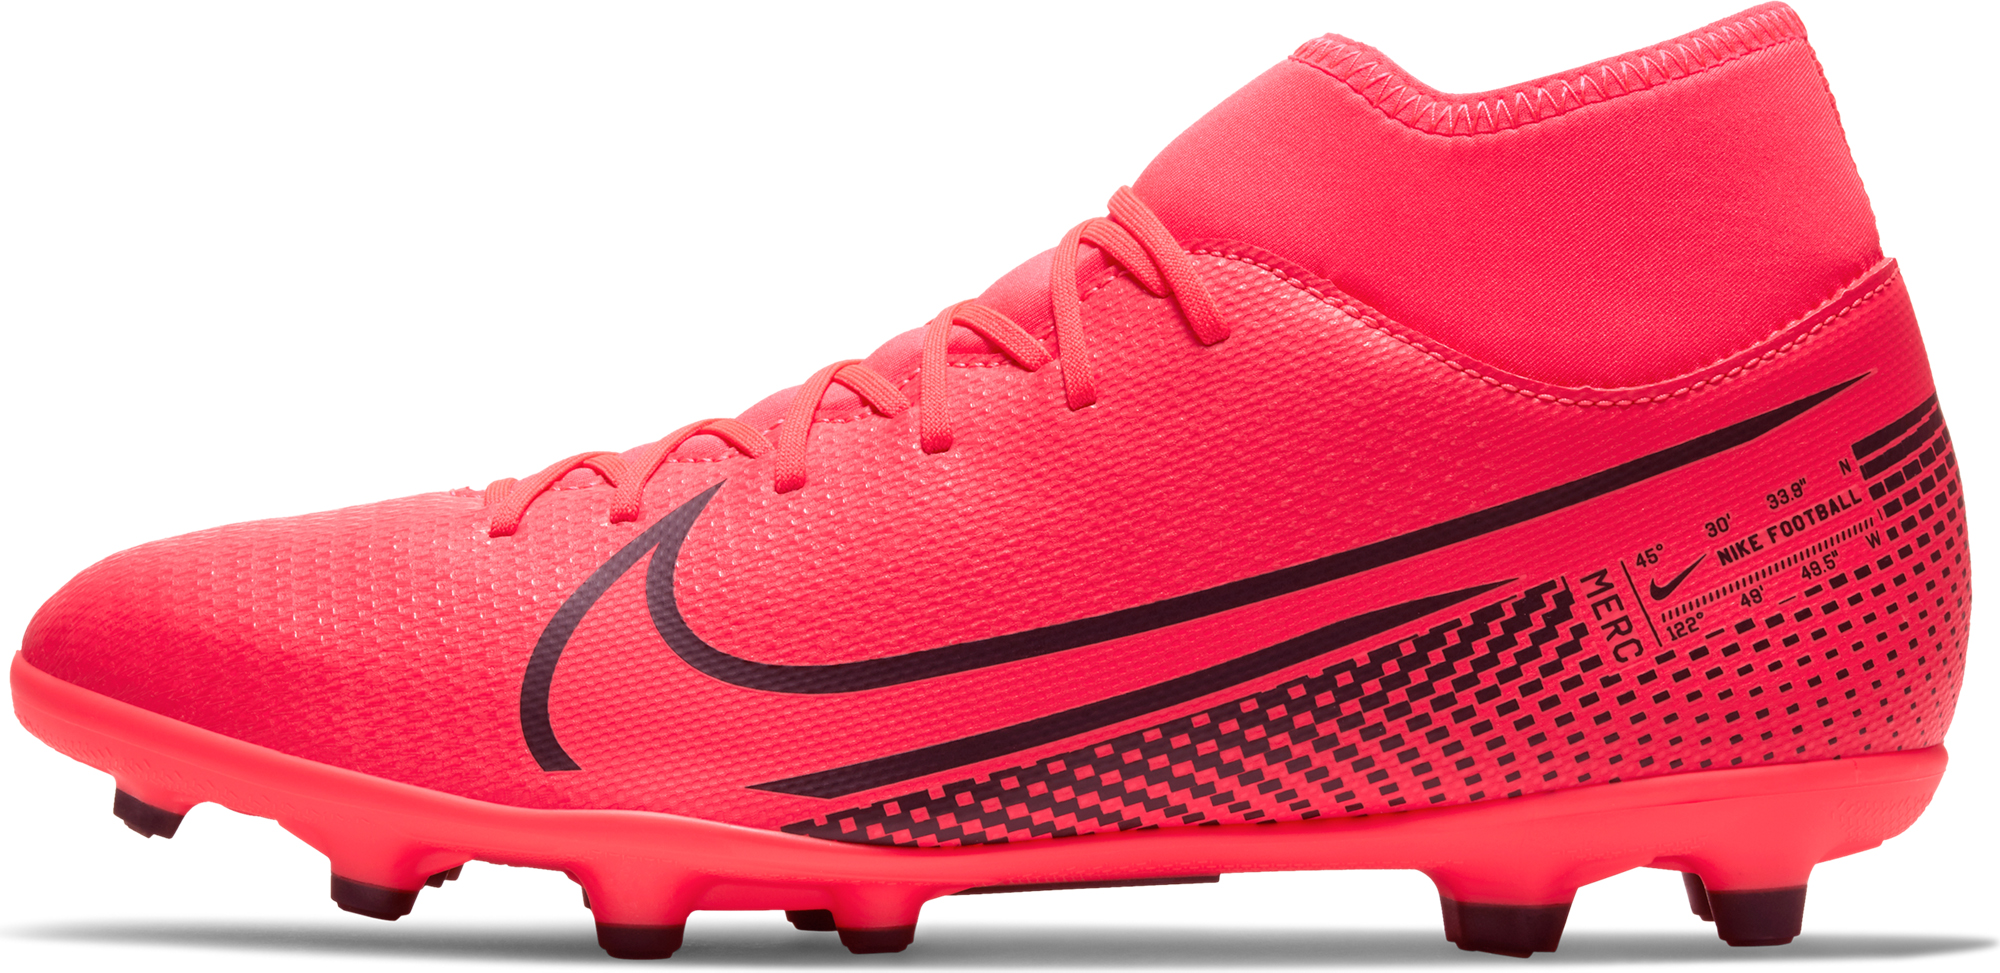 Nike Бутсы мужские Nike Superfly 7 Club FG/MG, размер 41 бутсы nike superfly 6 club fg mg ah7363 001